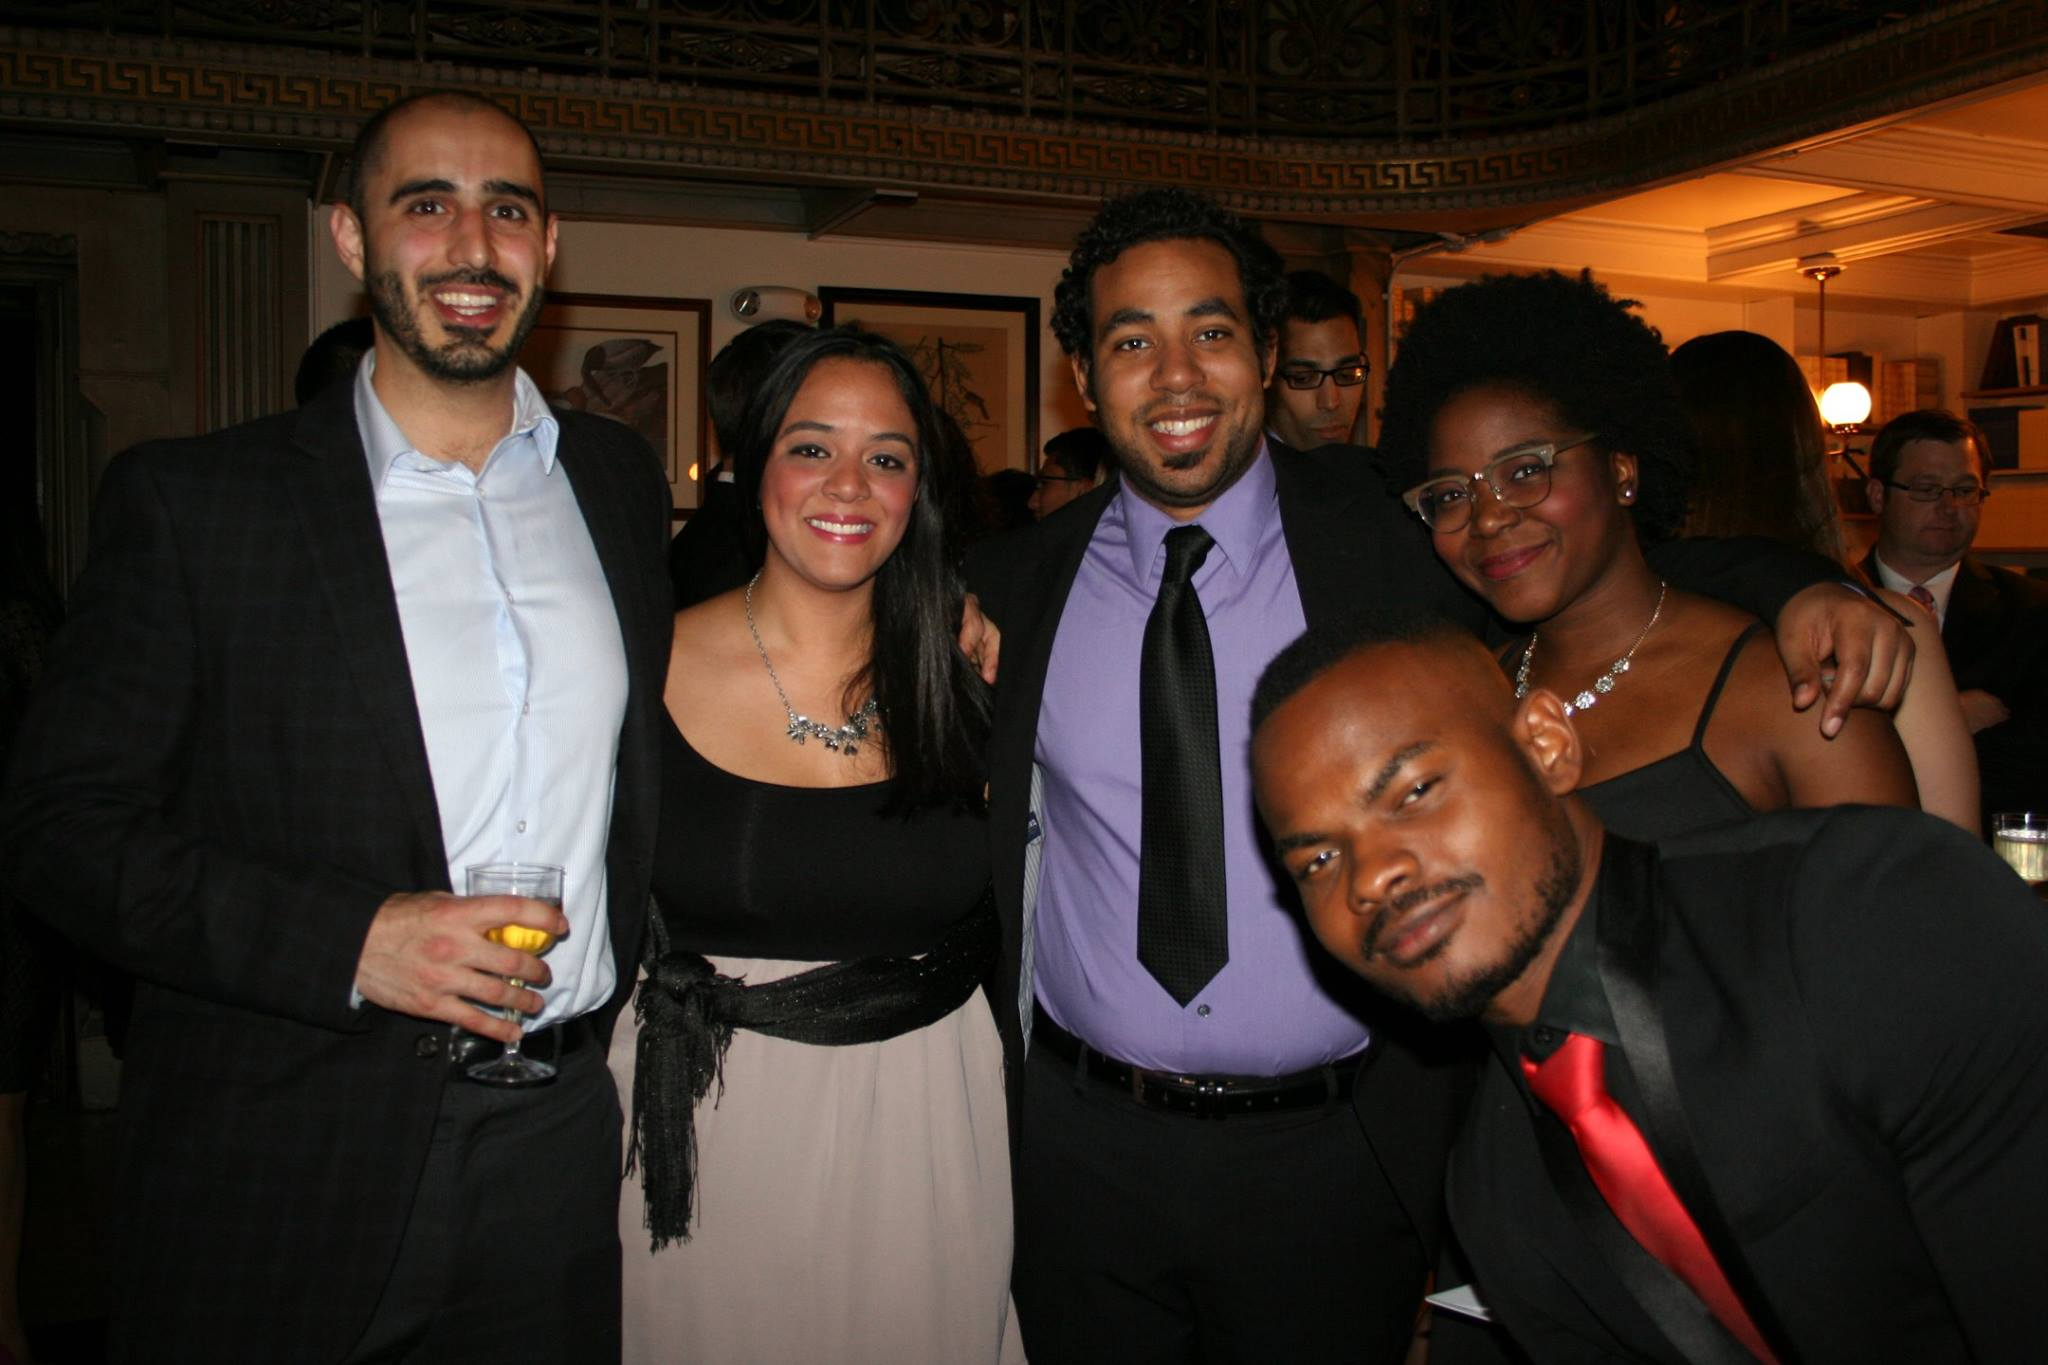 group picture of students at cocktail night